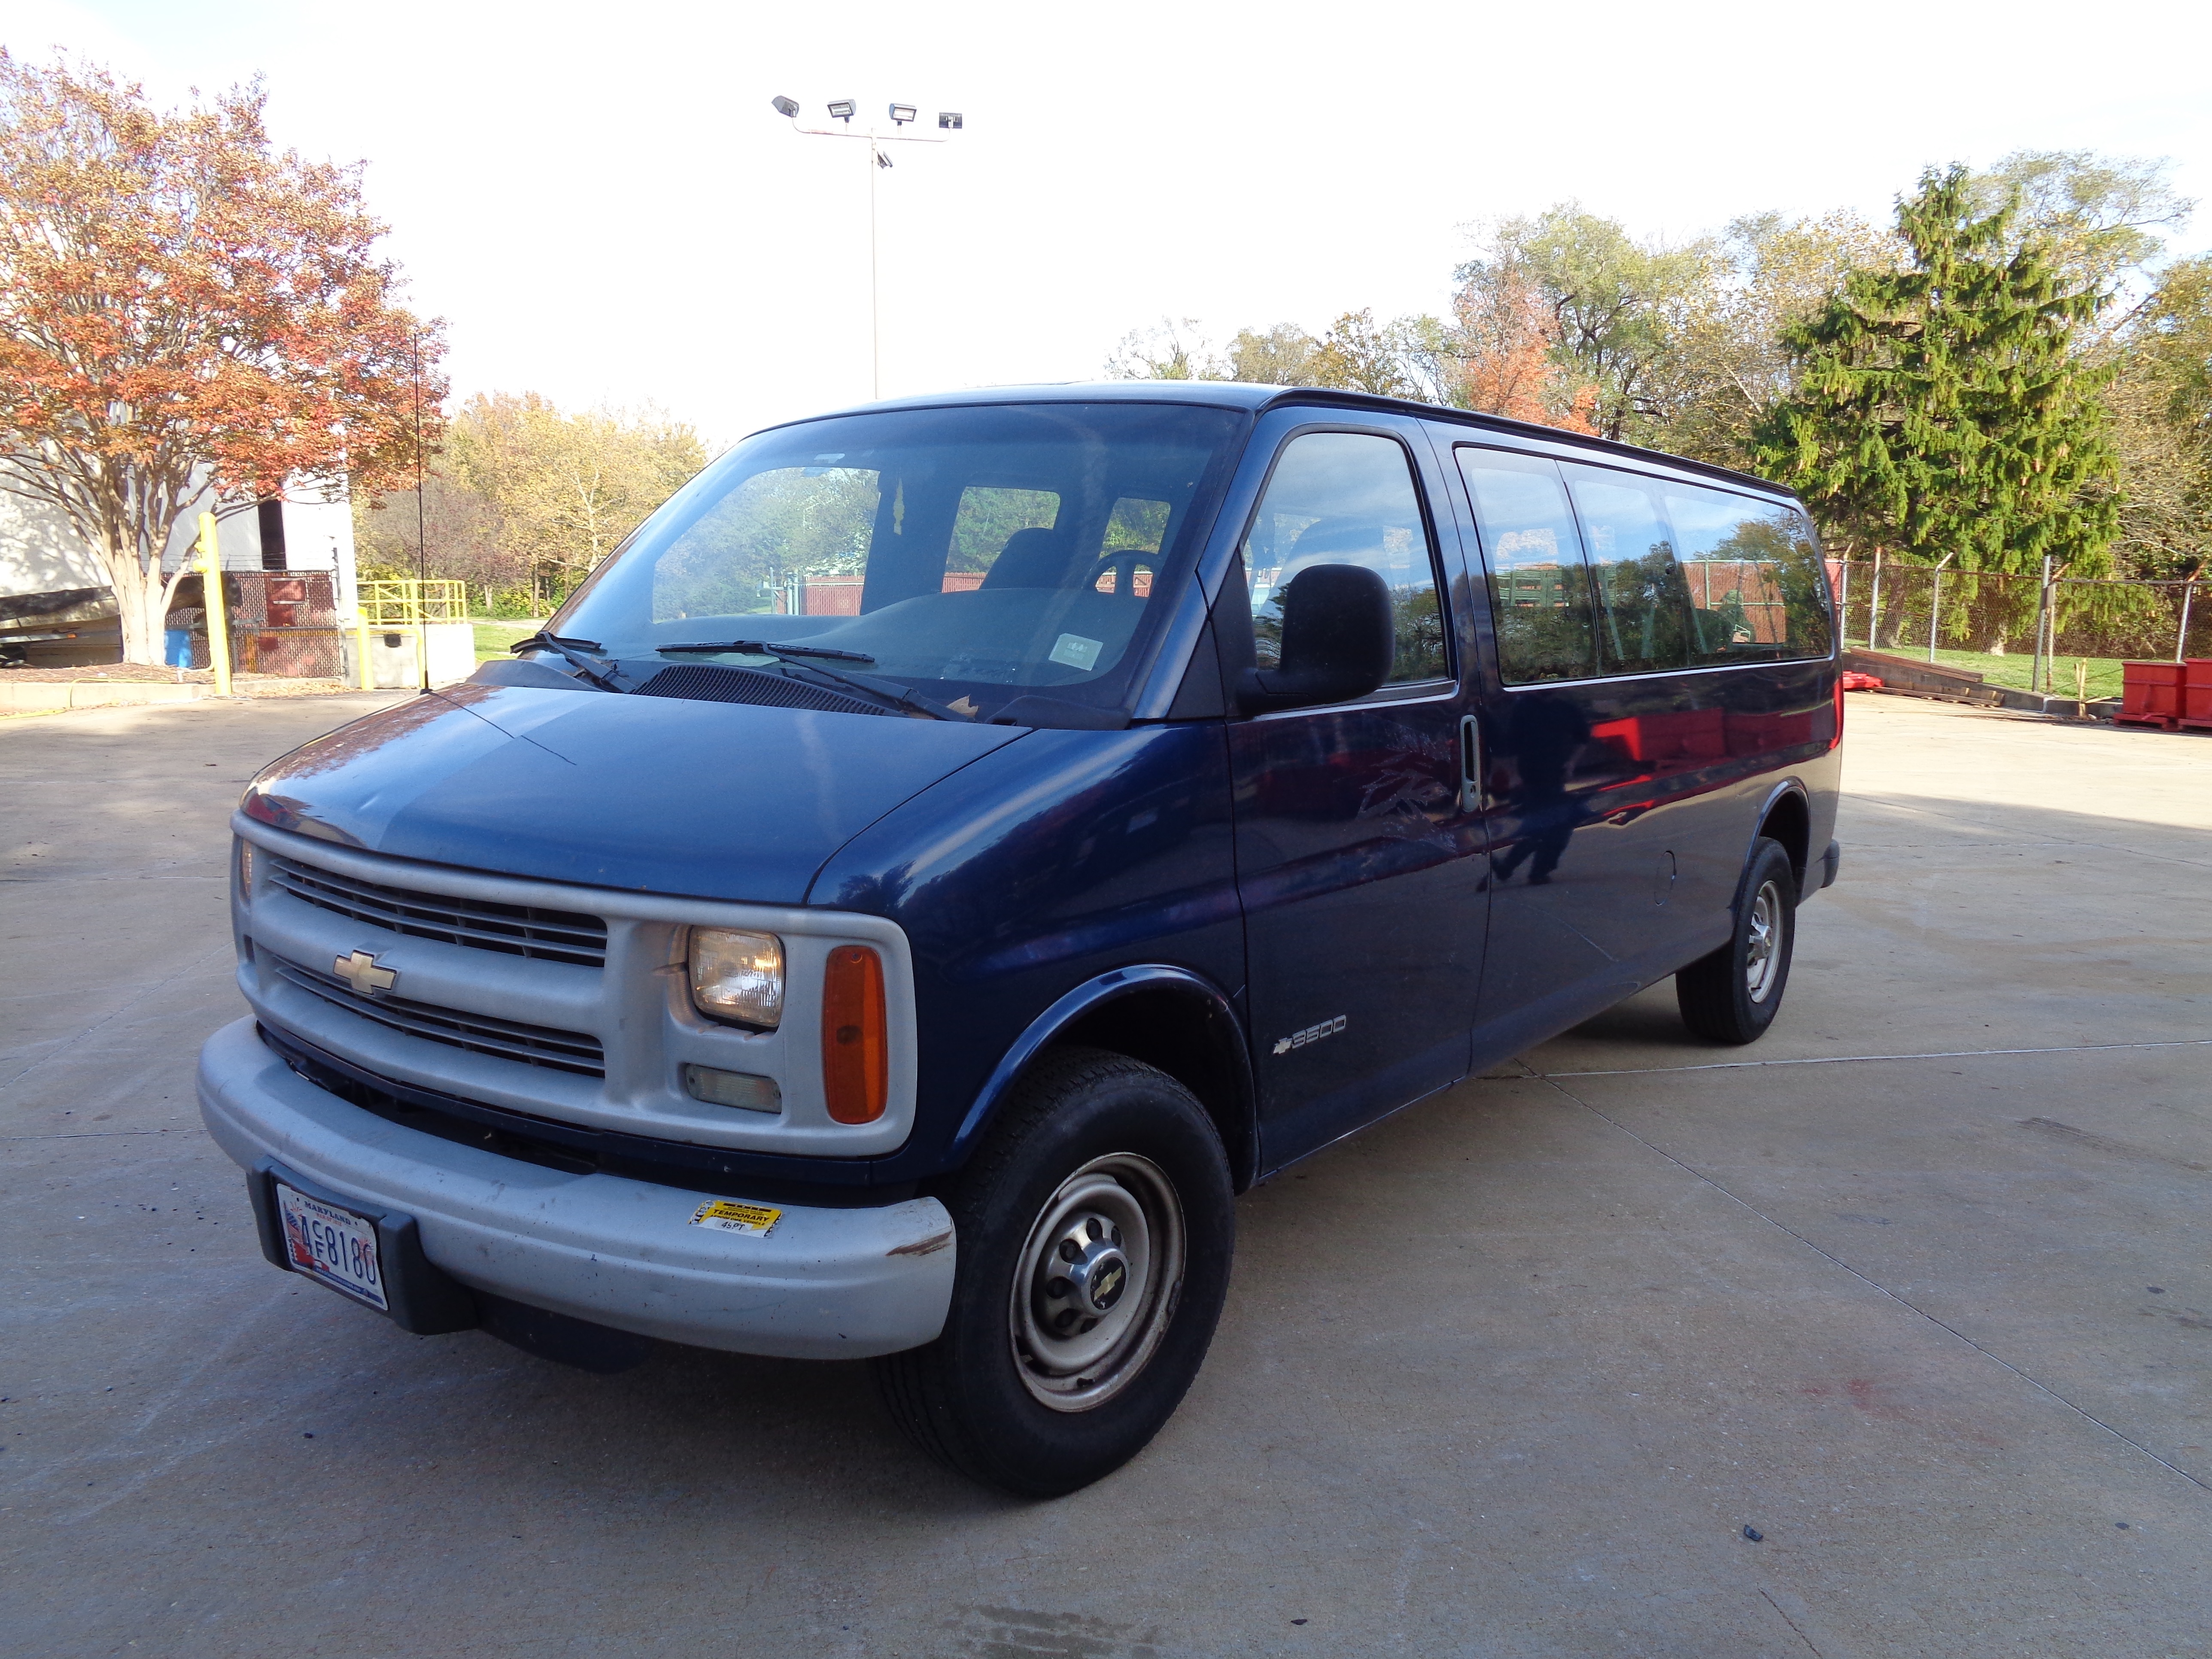 2002 Chevy G3500 Express - Image 2 of 9